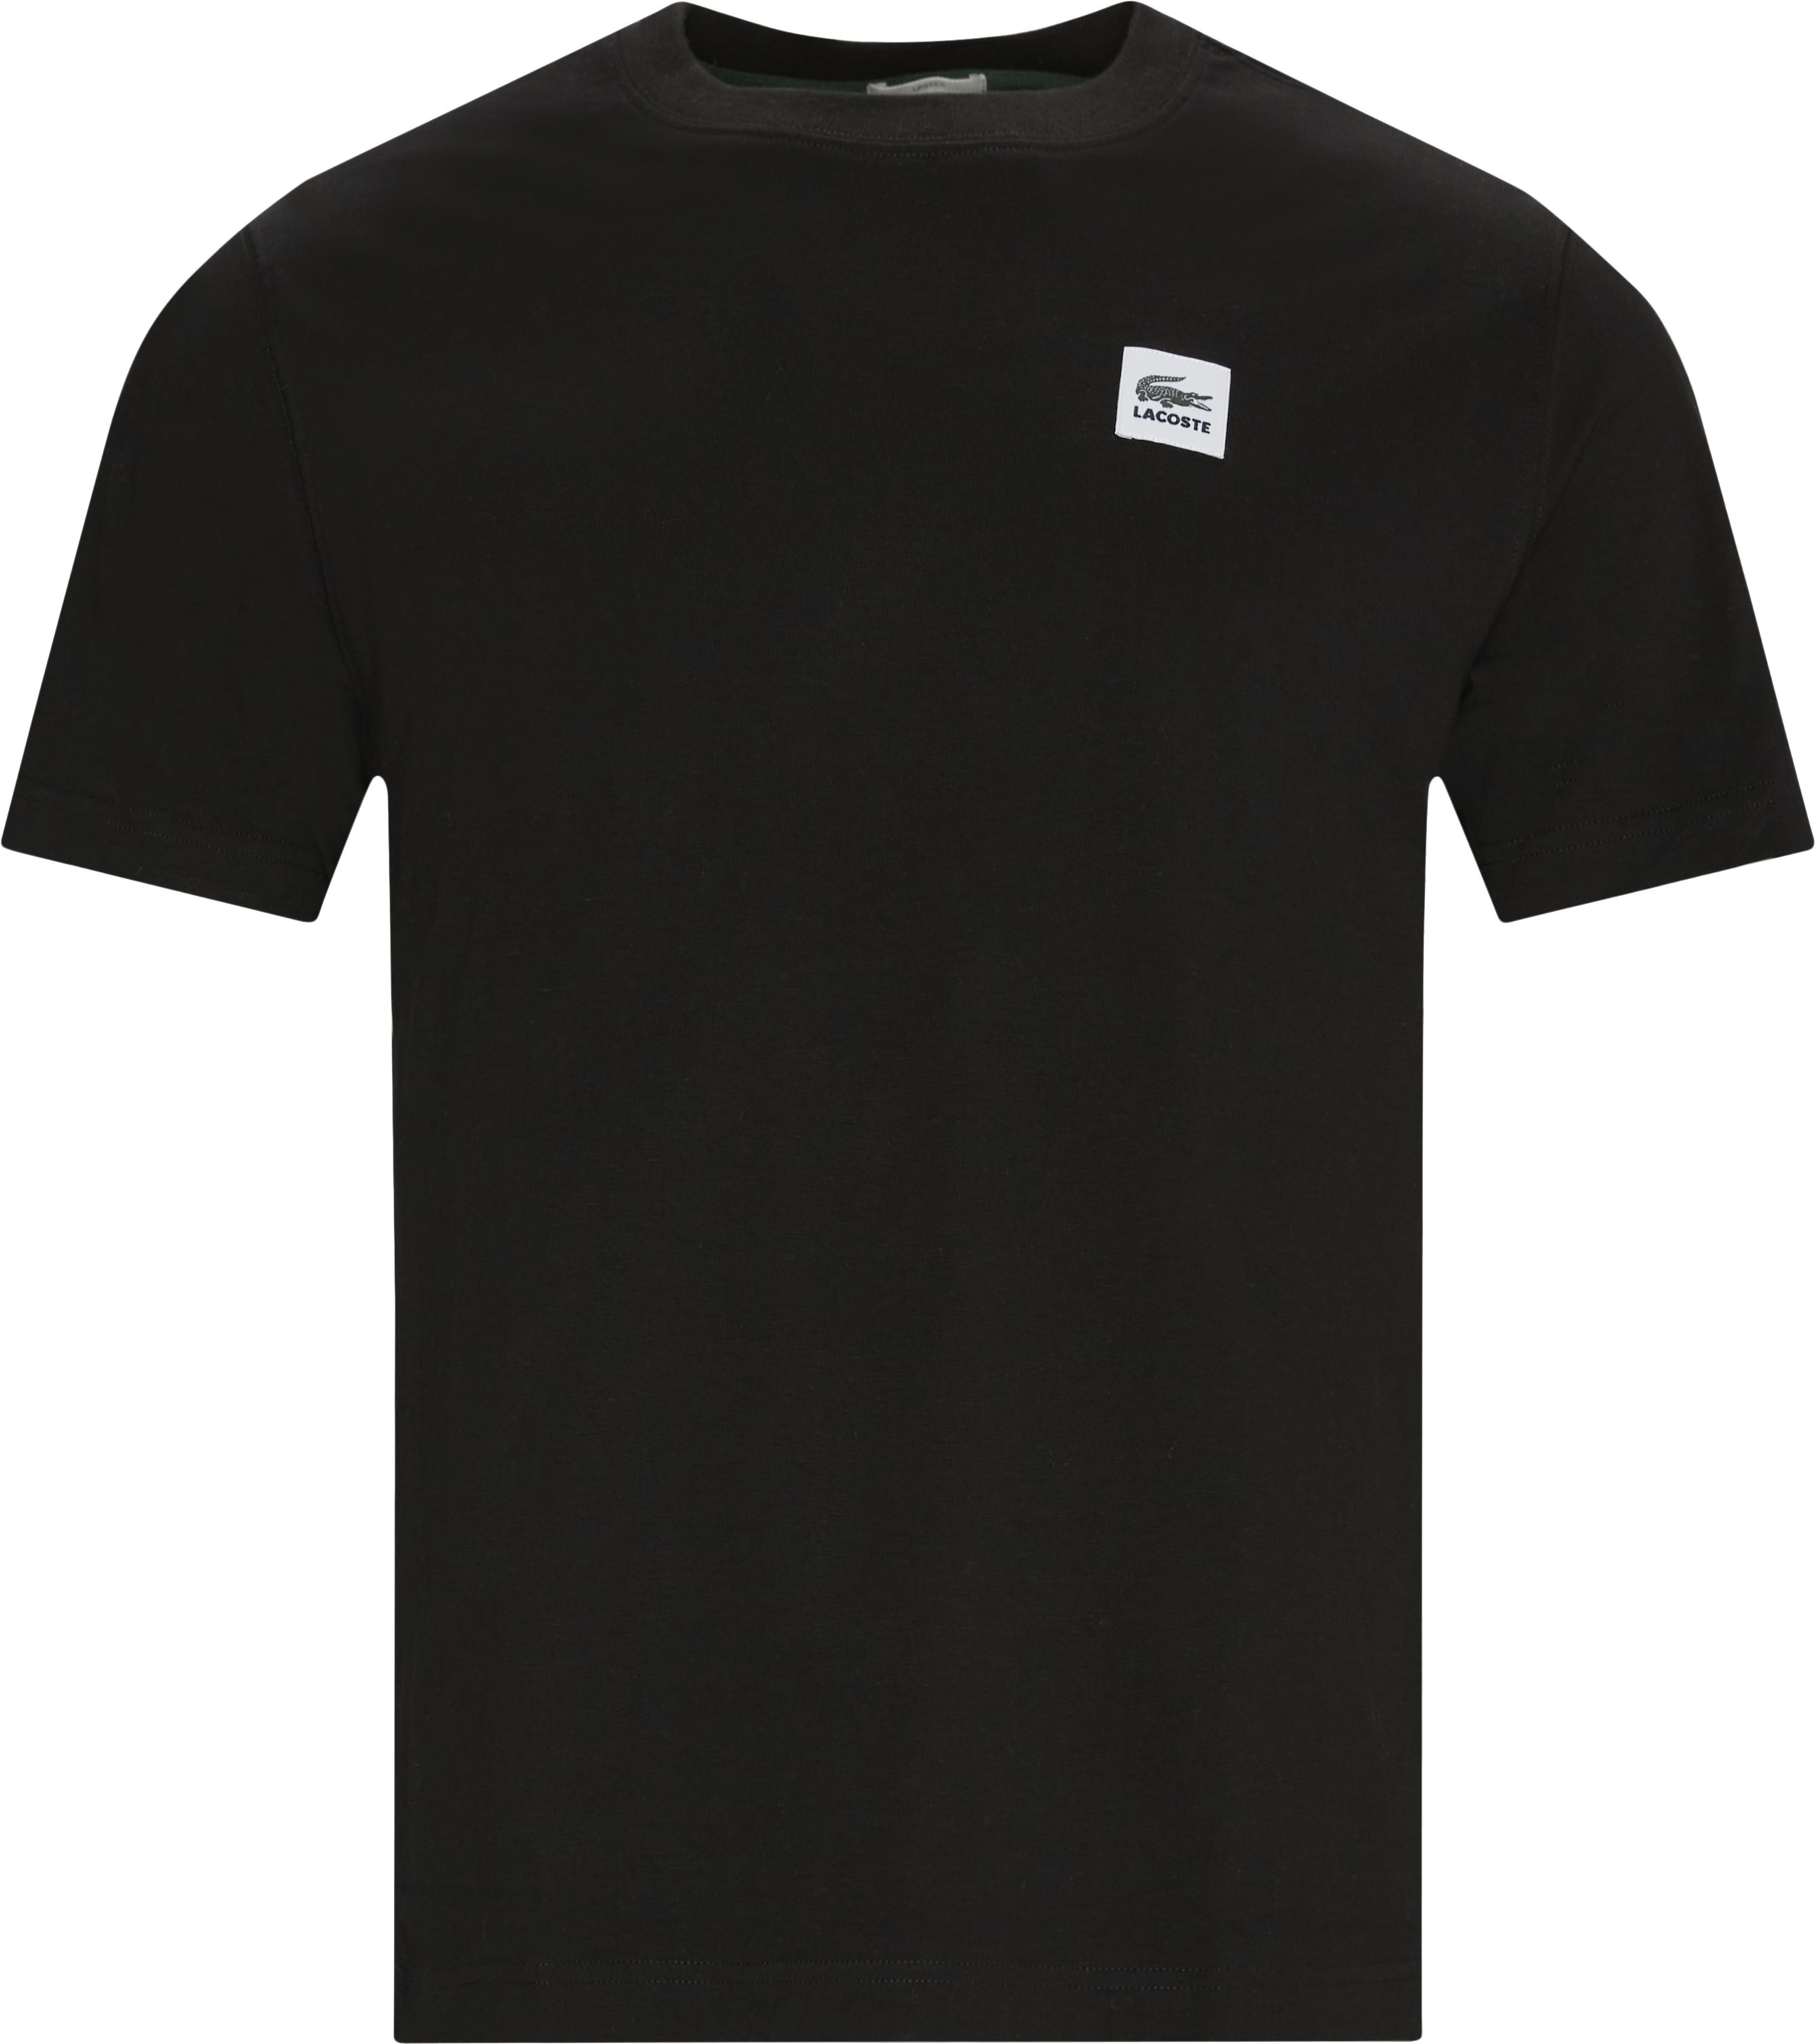 Logo Tee - T-shirts - Regular - Black